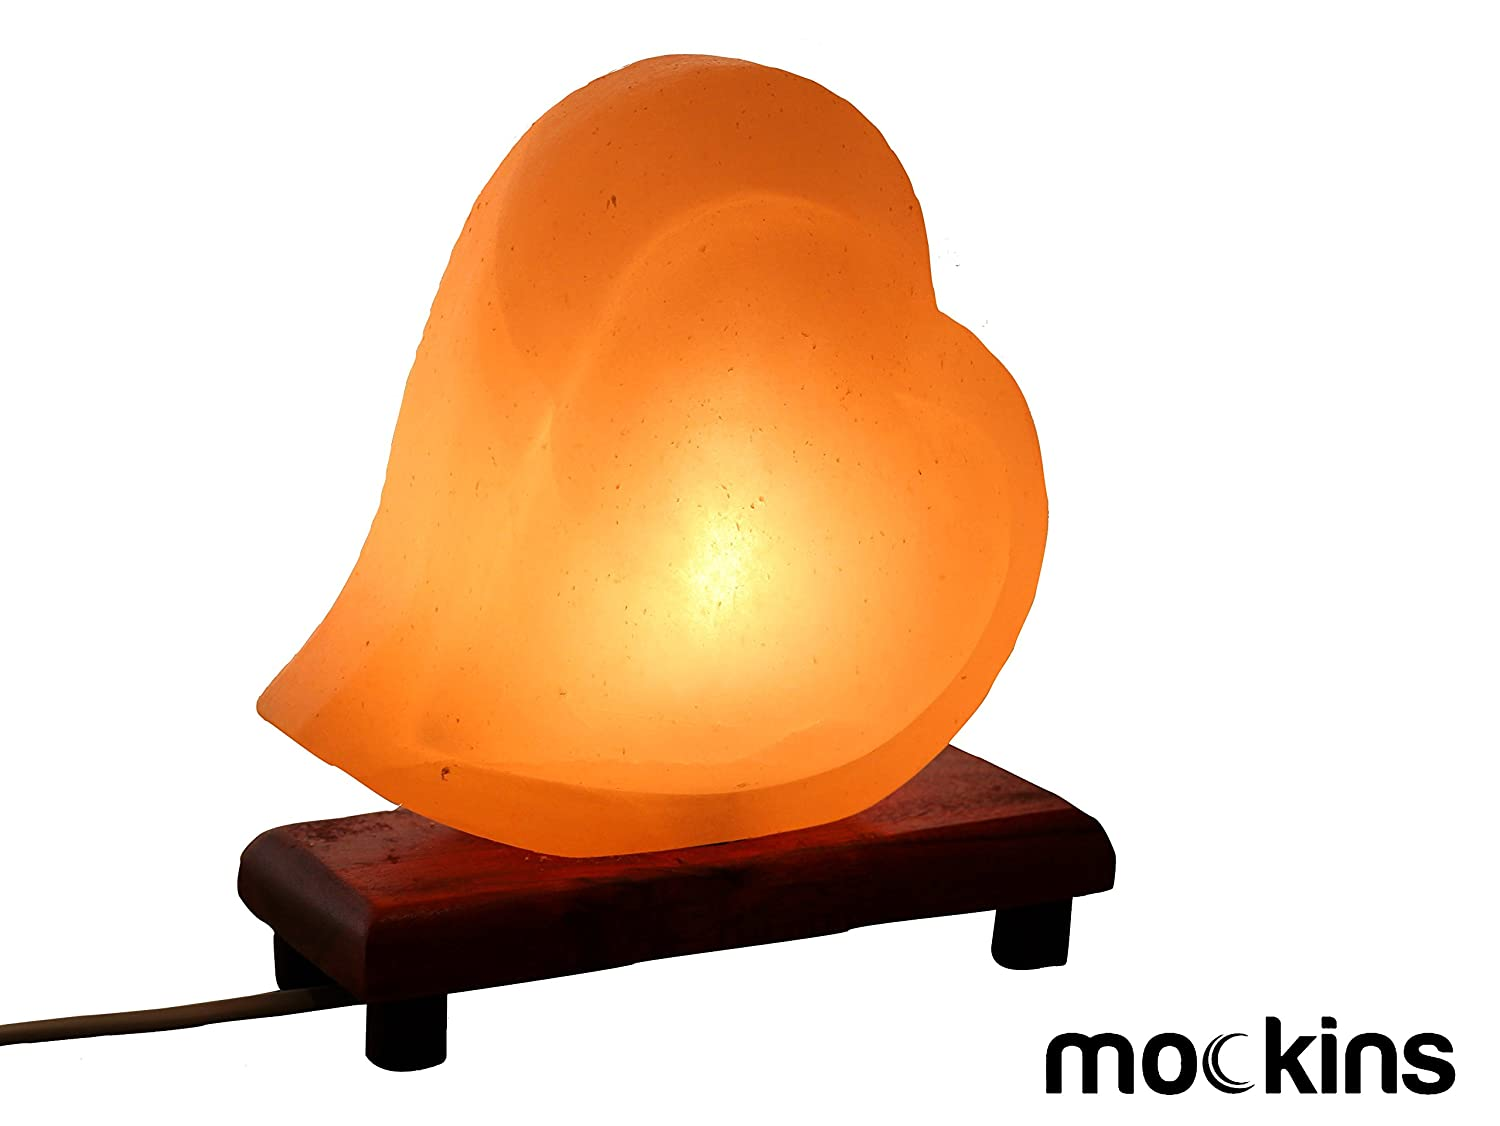 Mockins Natural Himalayan Salt Double Heart Shaped Lamp The Salt Lamp is Hand Carved with a Wooden Base and Dimmer - Best